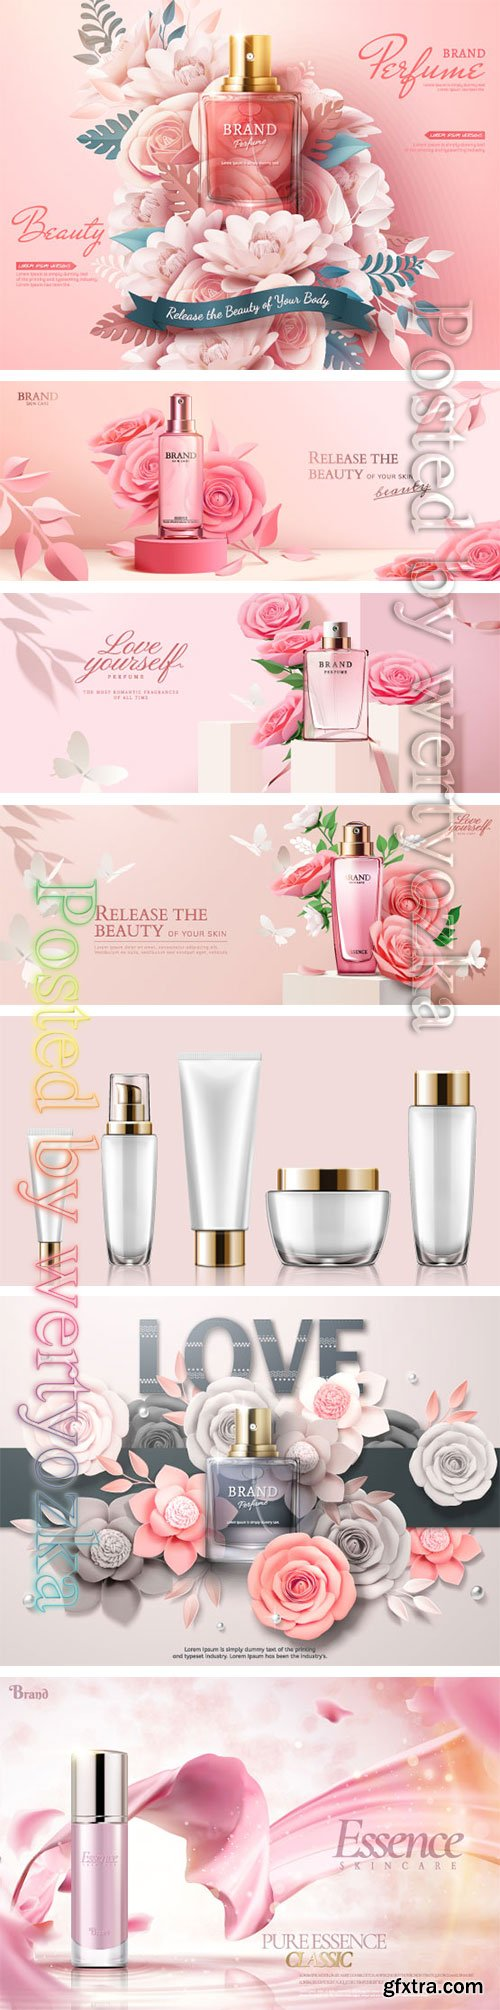 Make up and skincare packaging vector template # 6